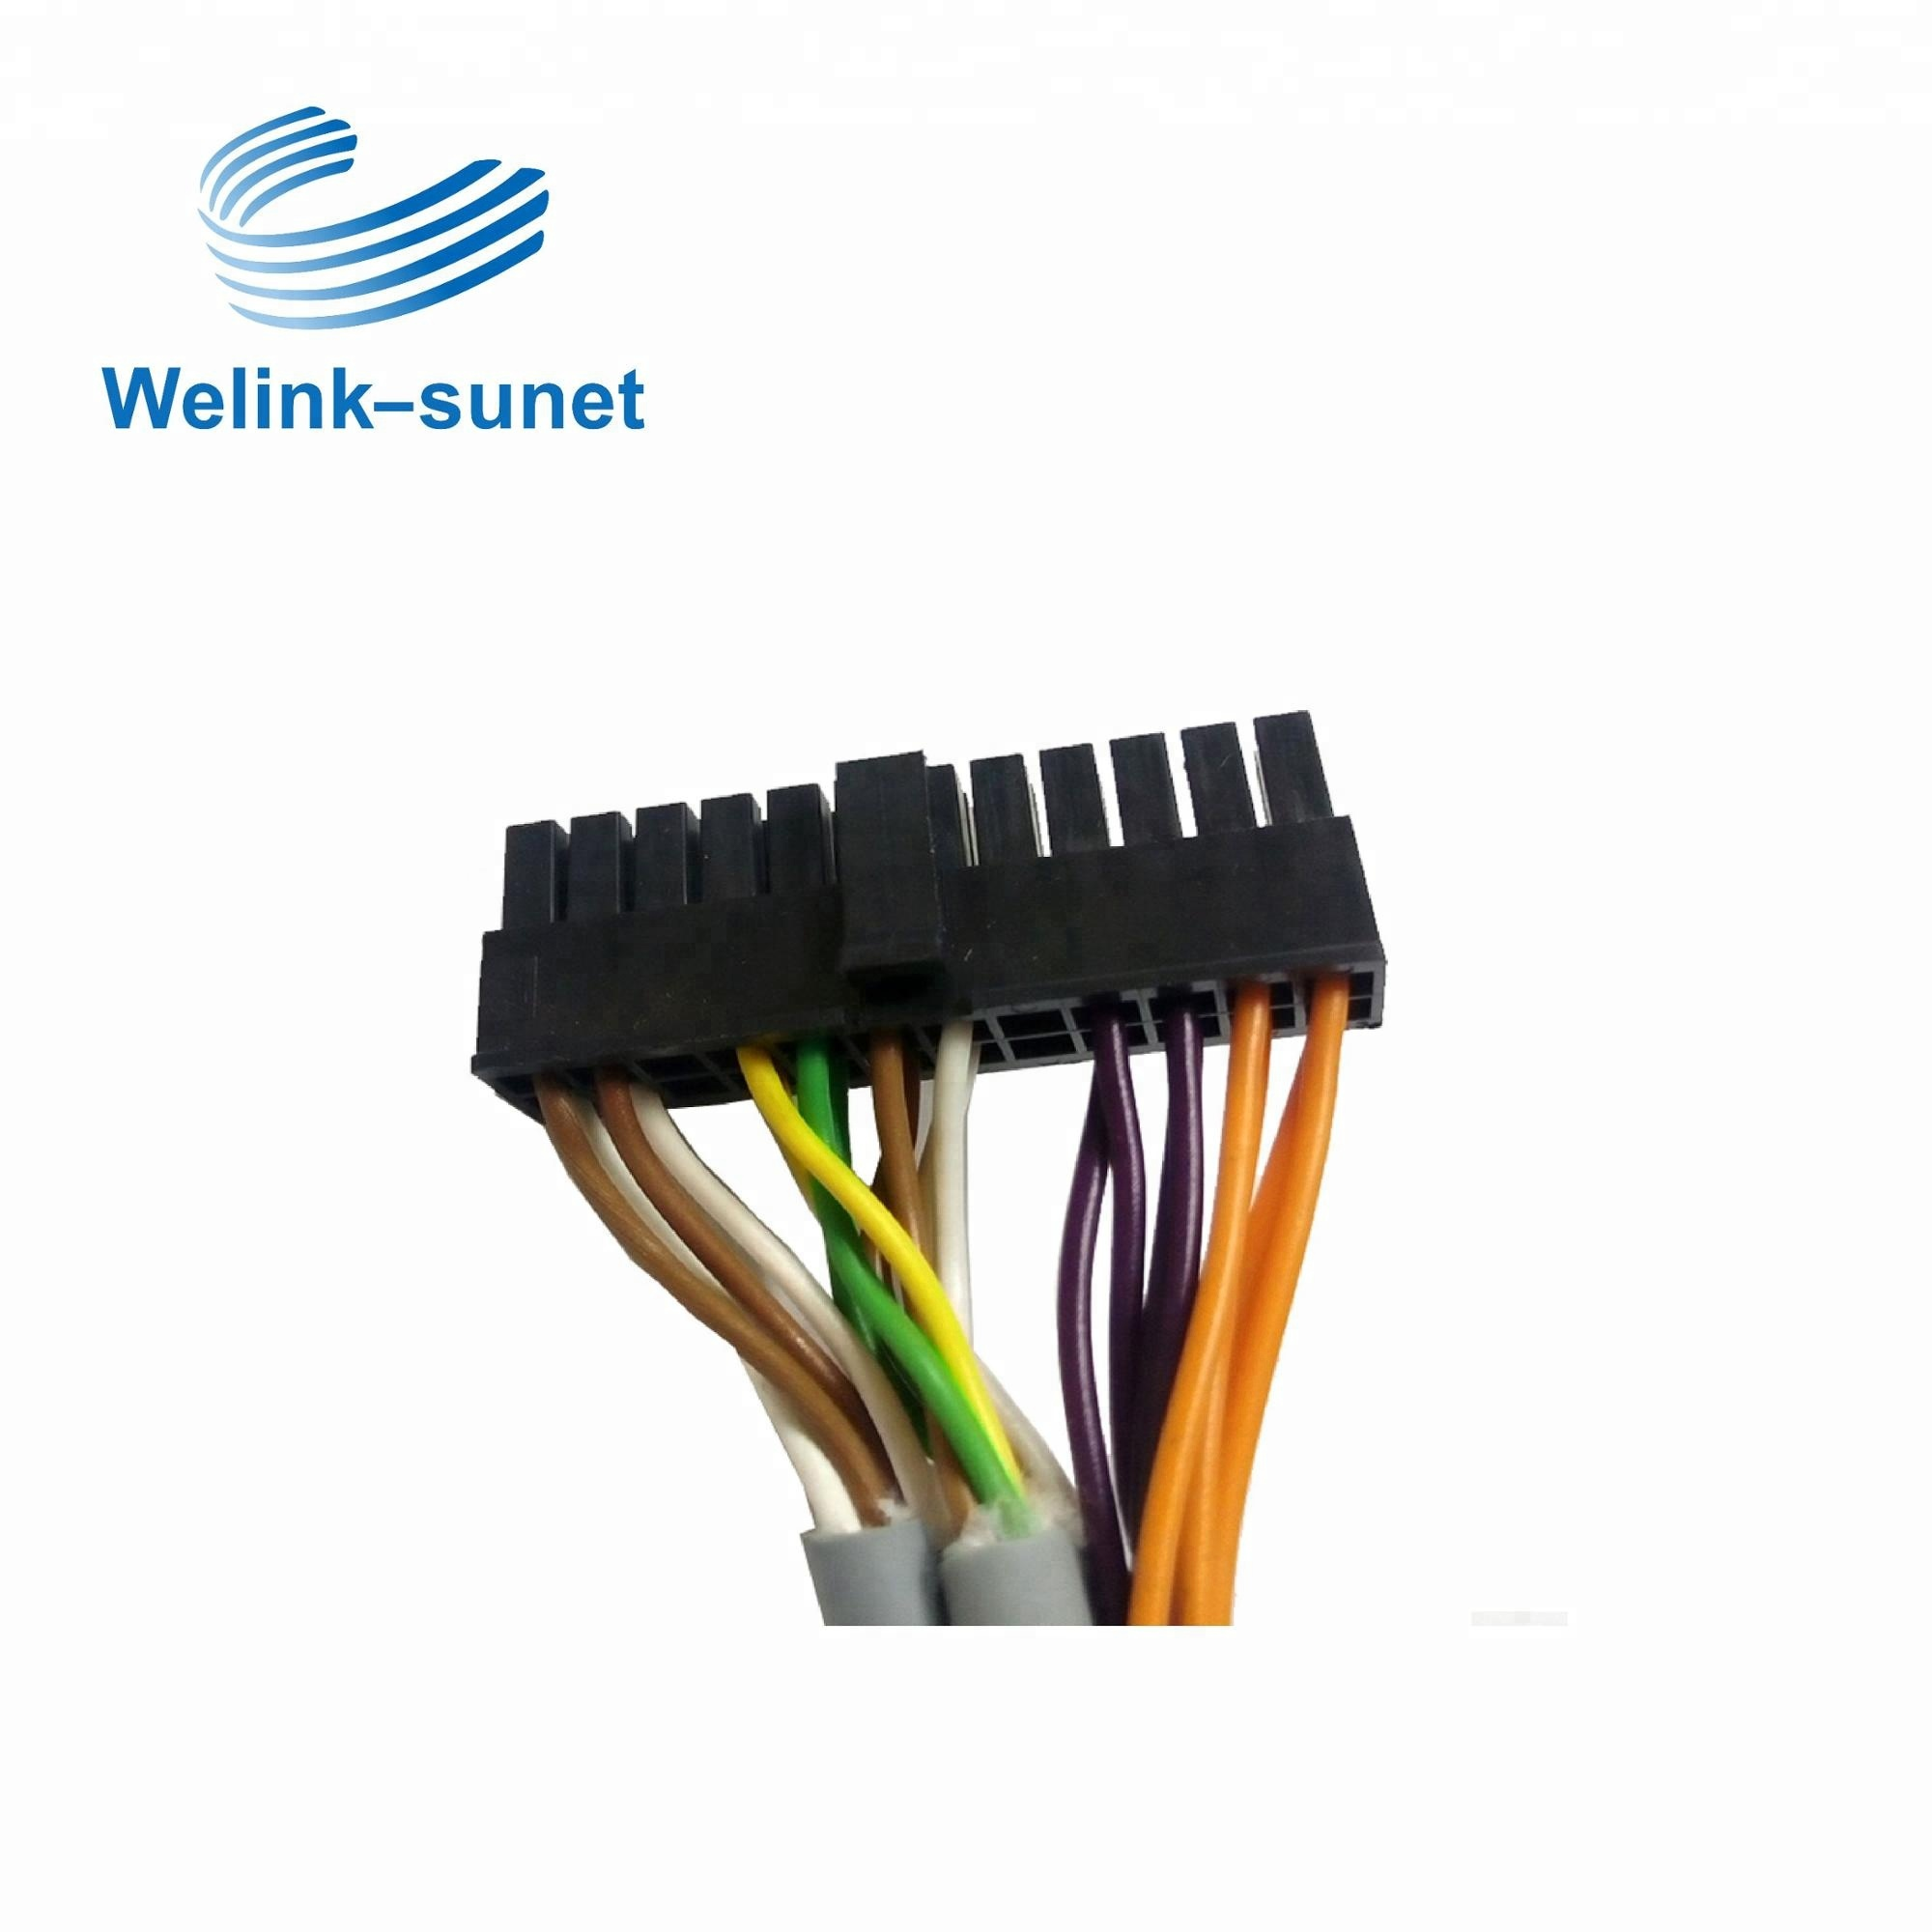 Molex 43025 3 Wire Harness Series For Ground Heating Equipment 2000x2000